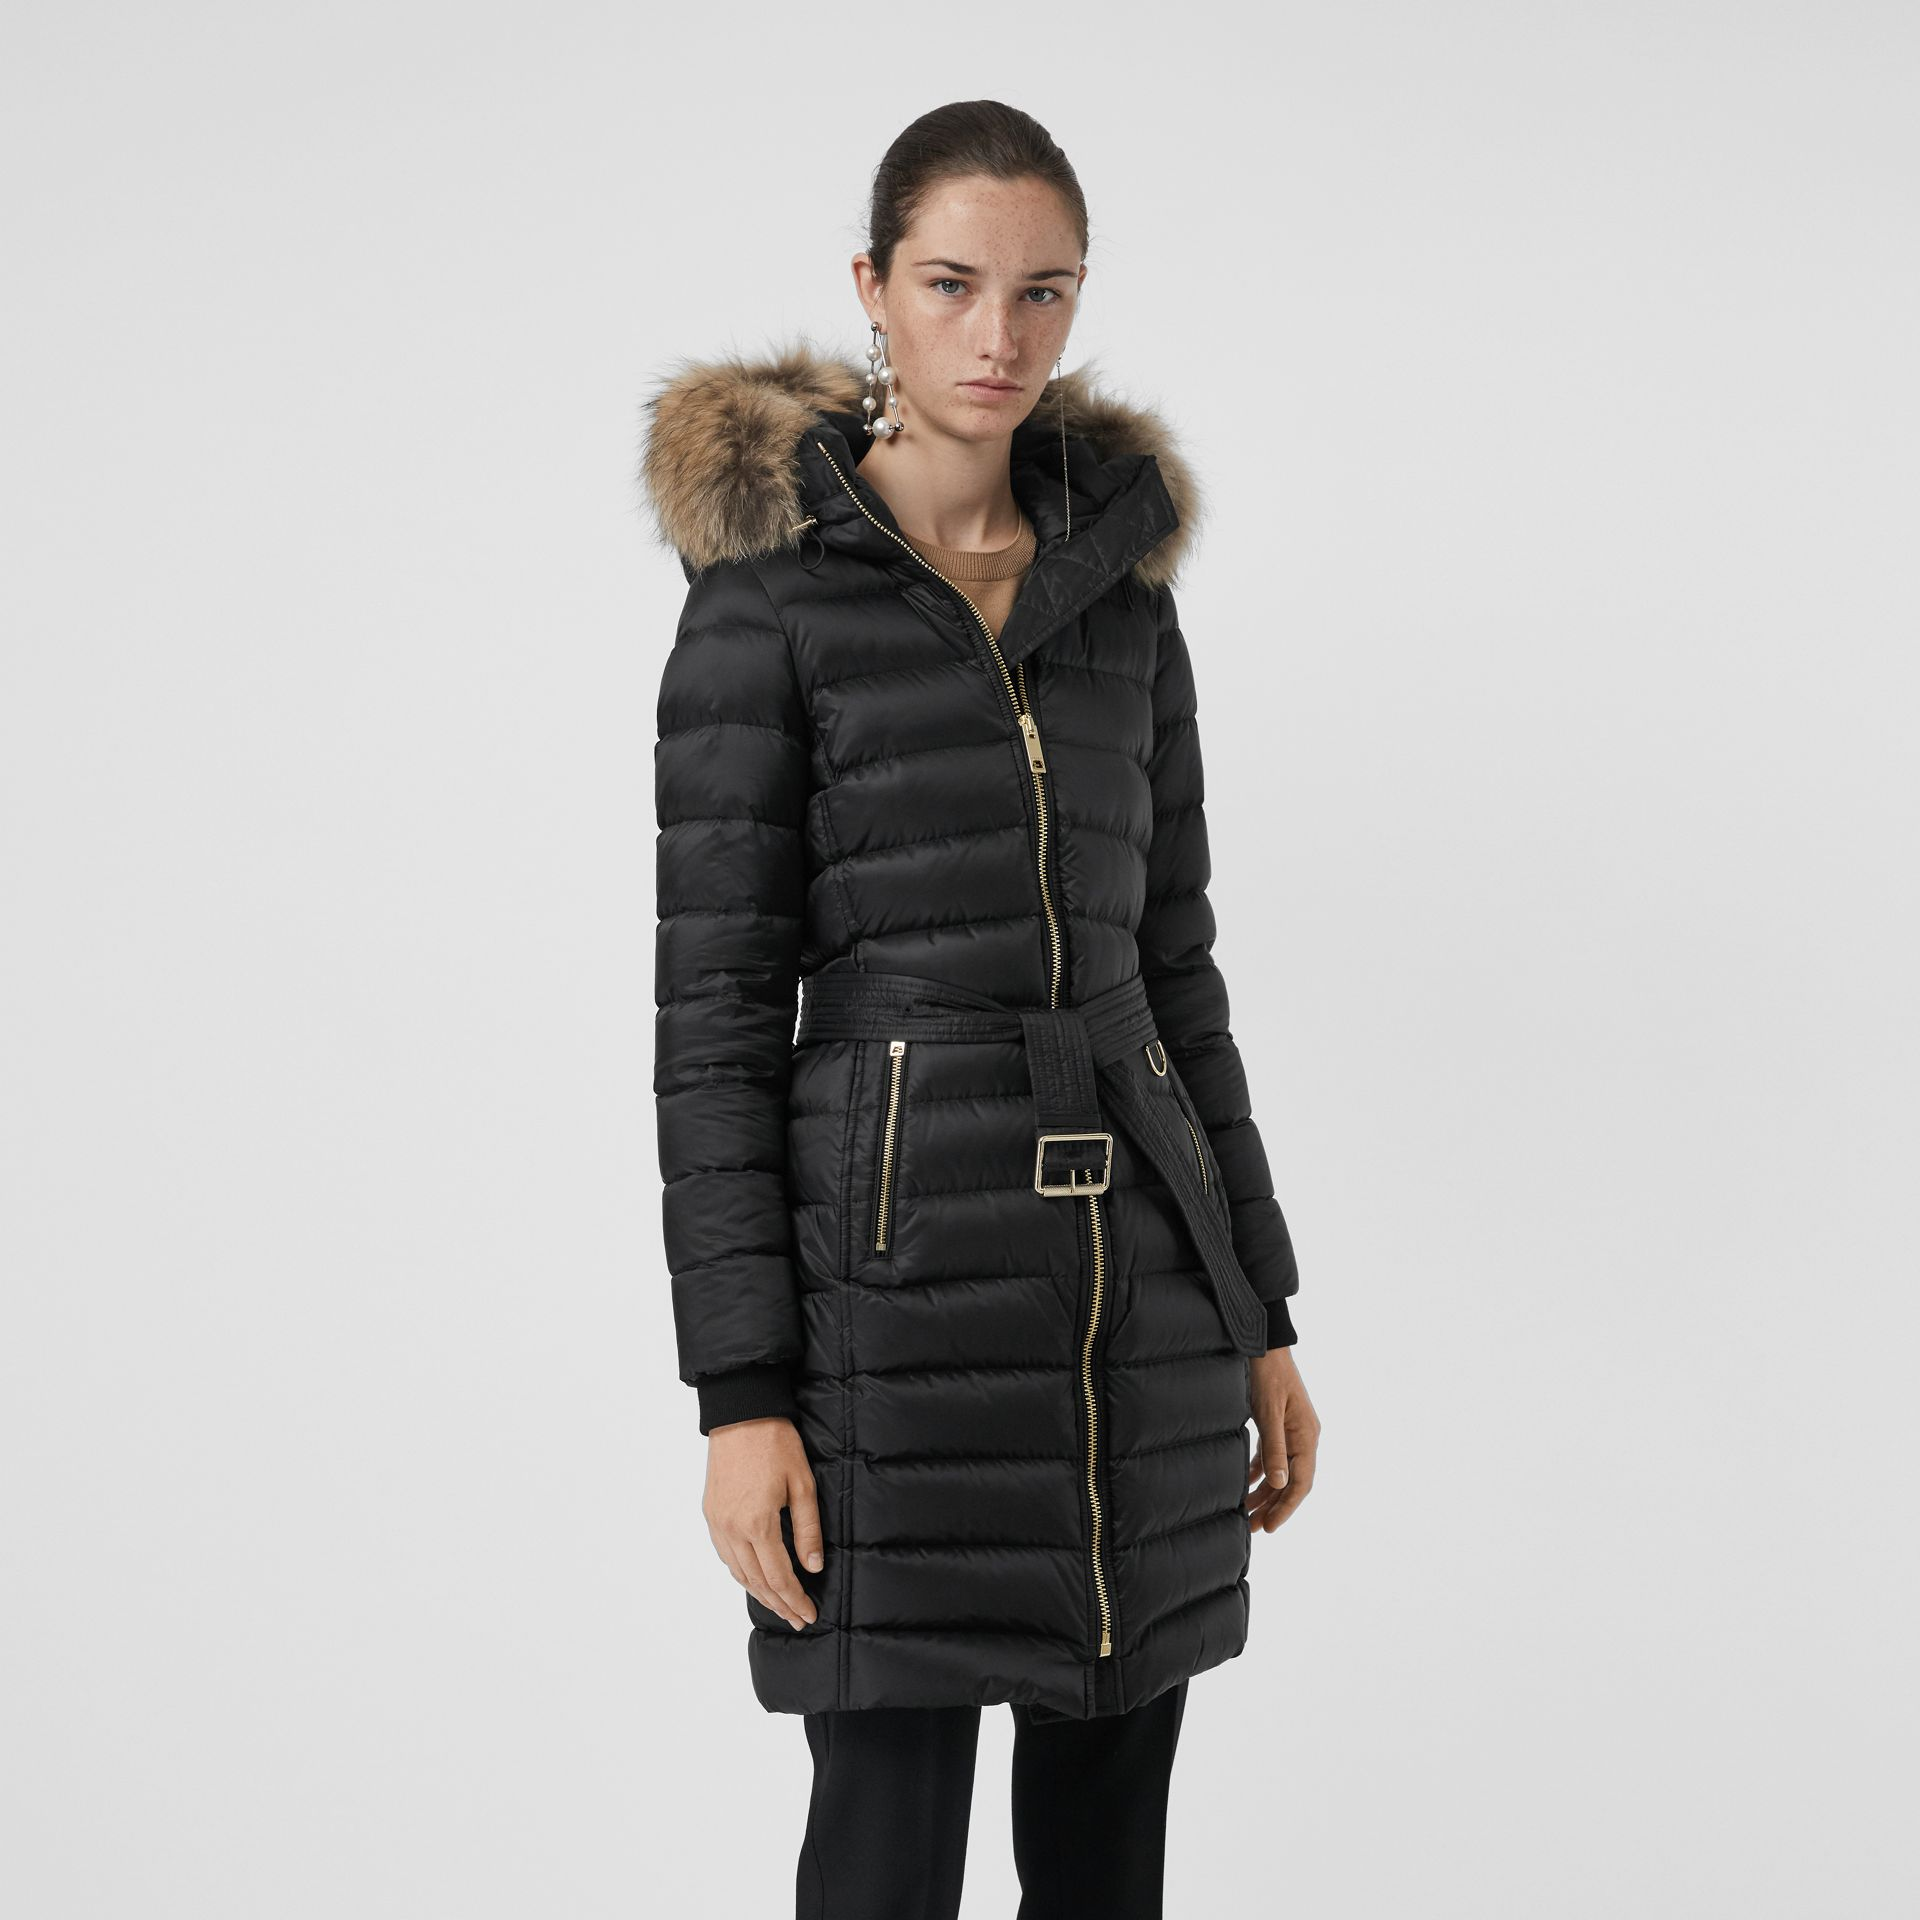 Detachable Fur Trim Down-filled Puffer Coat with Hood in Black - Women | Burberry - gallery image 5